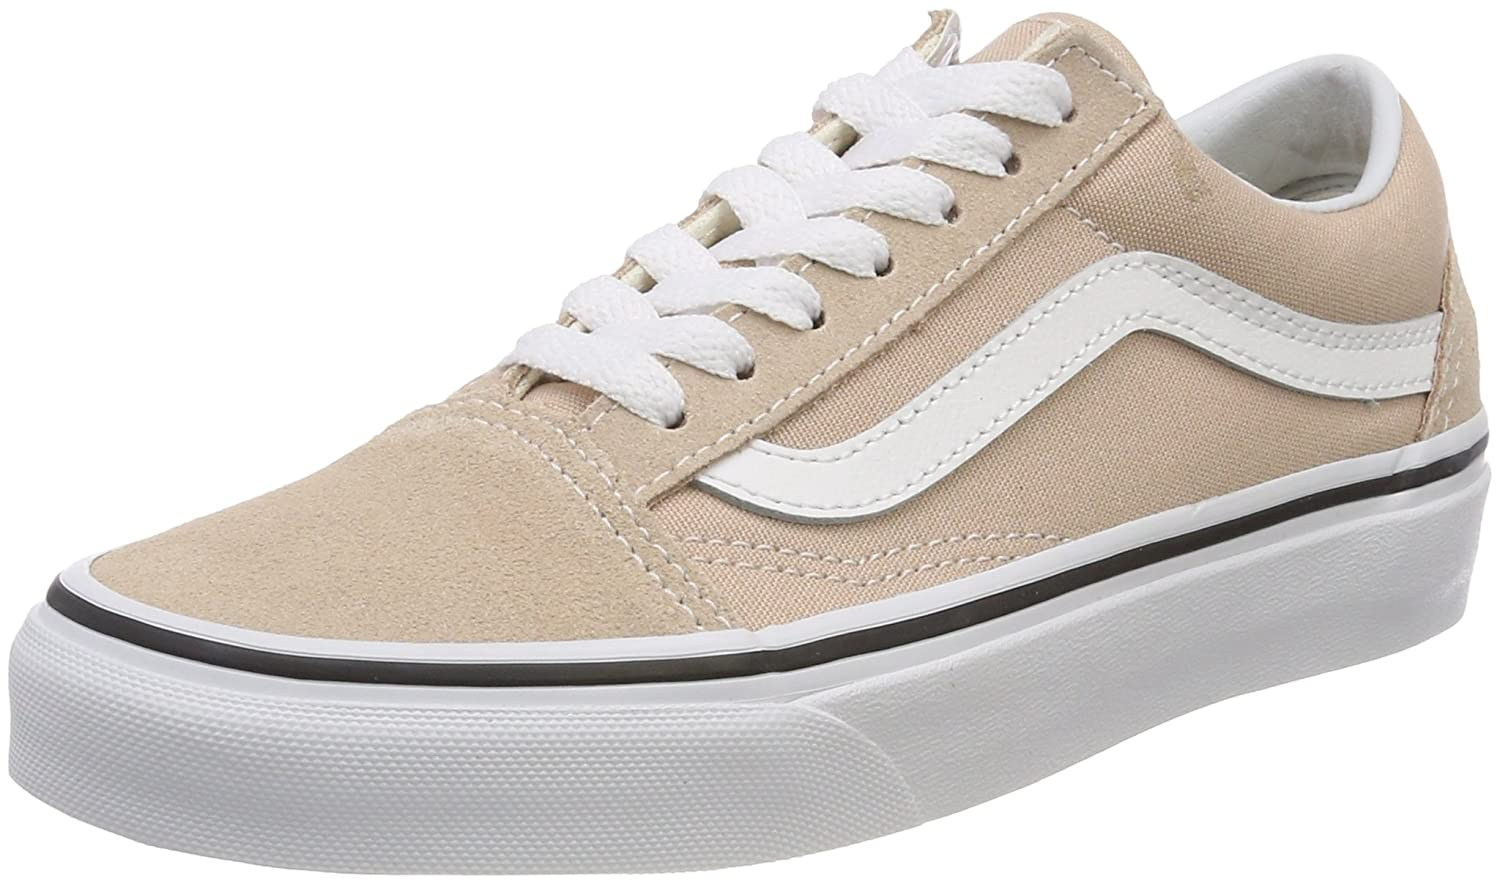 1027d1b23baa Vans Old Skool